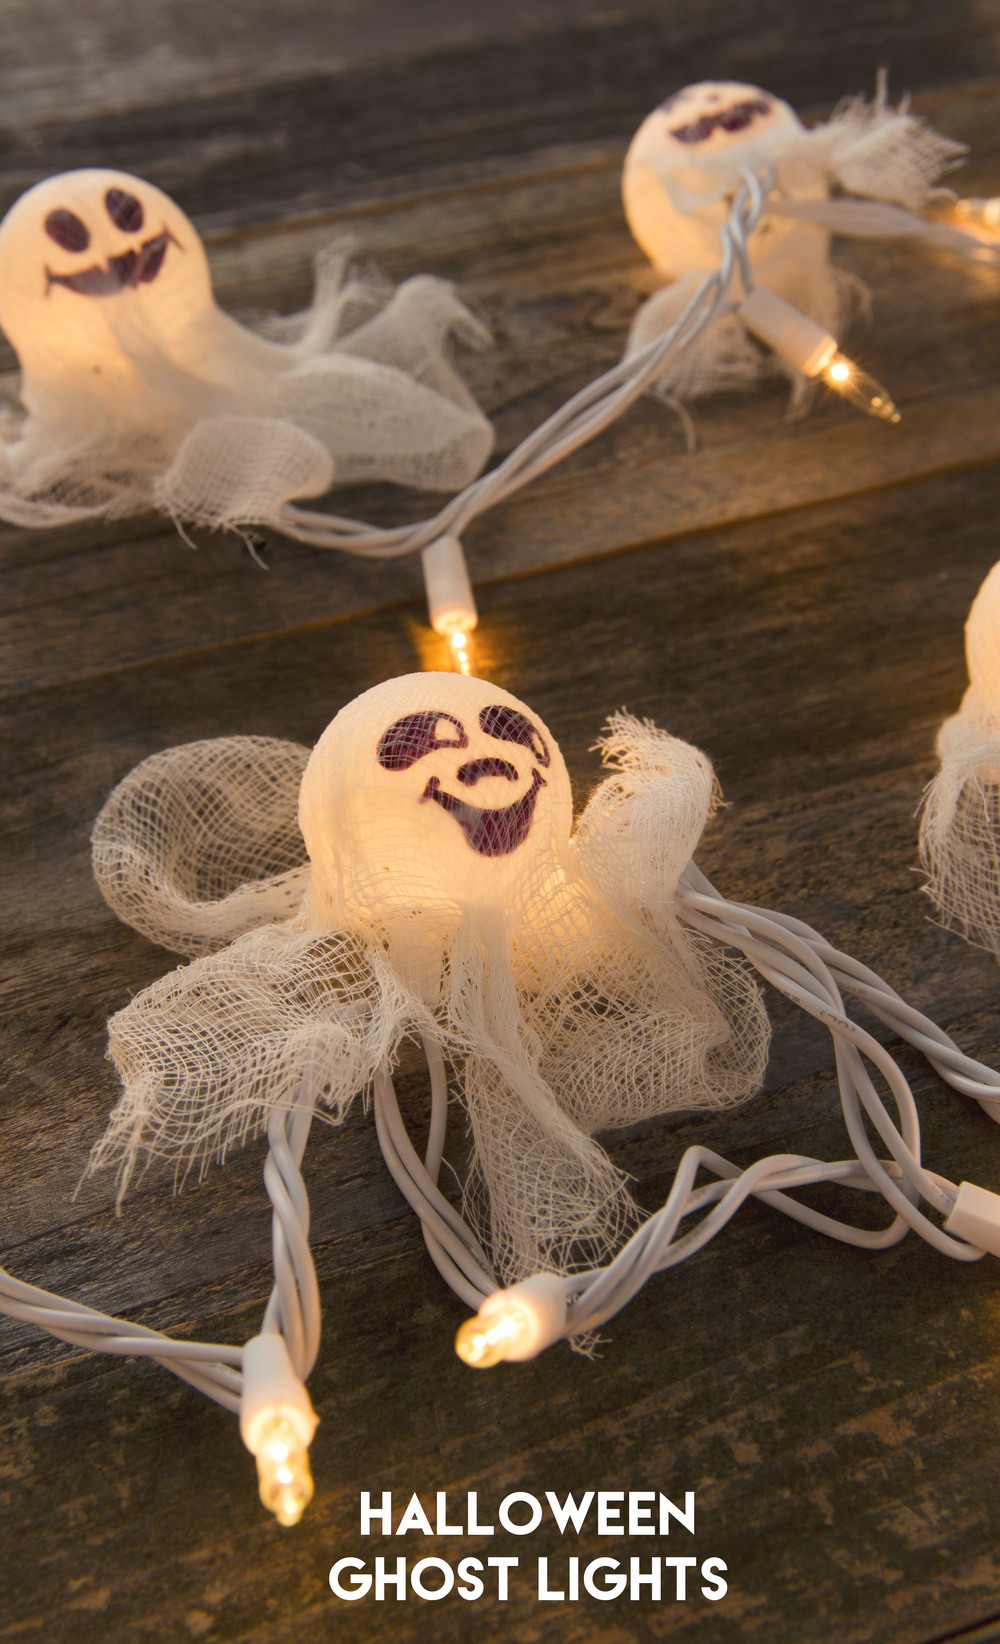 Cute Halloween Ghost Lights DIY